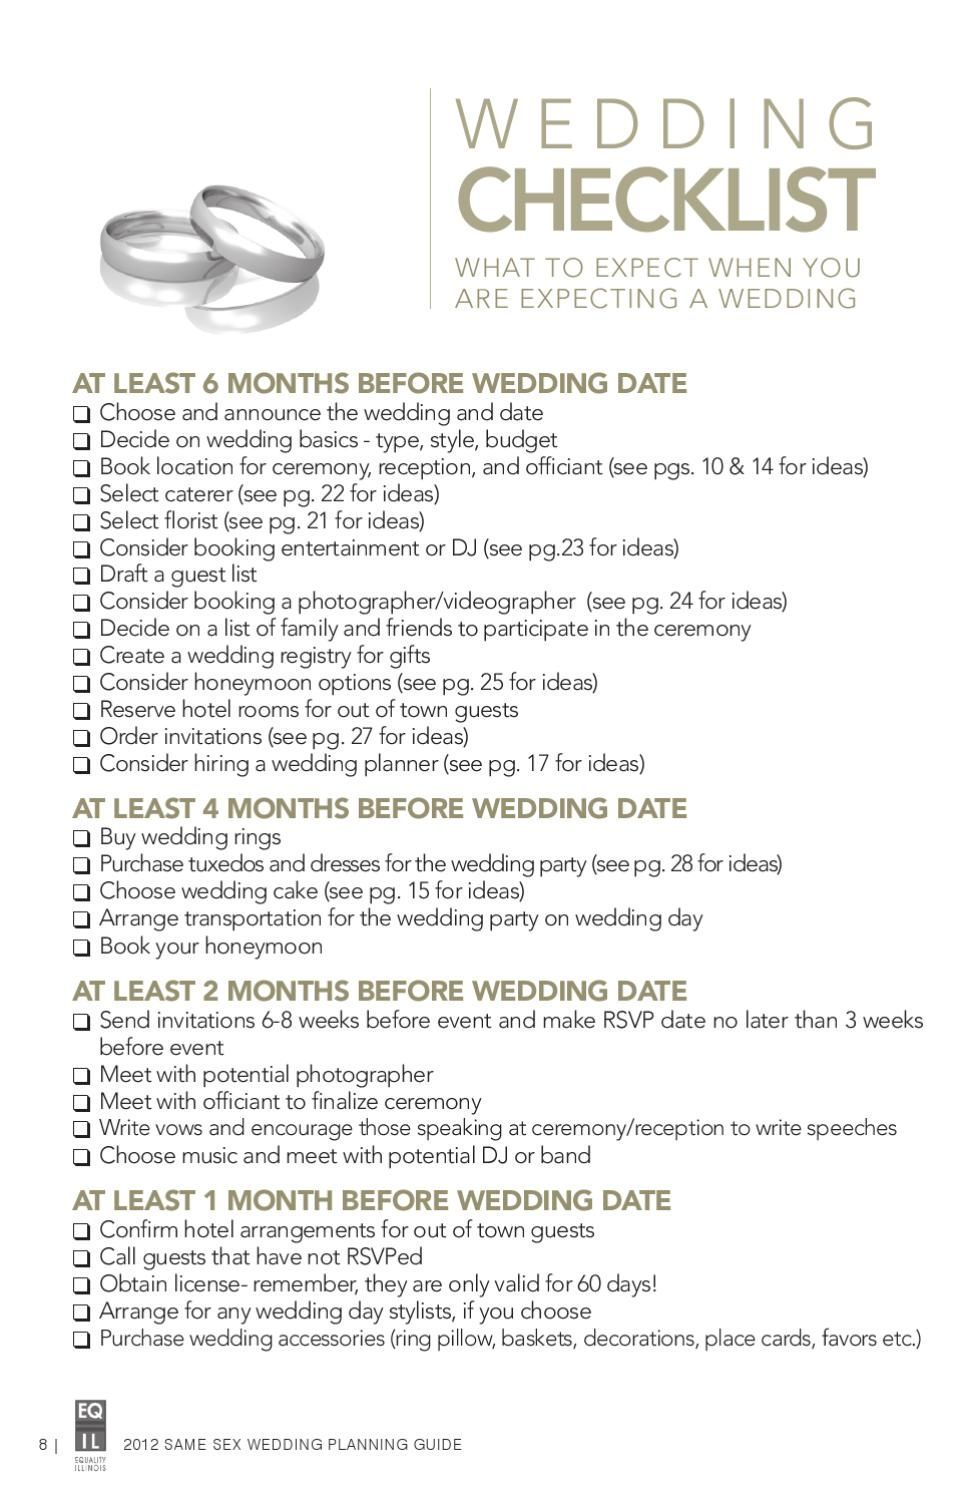 Same sex wedding planning guide wedding planning decoration and issuu same sex wedding planning guide by equality illinois junglespirit Choice Image